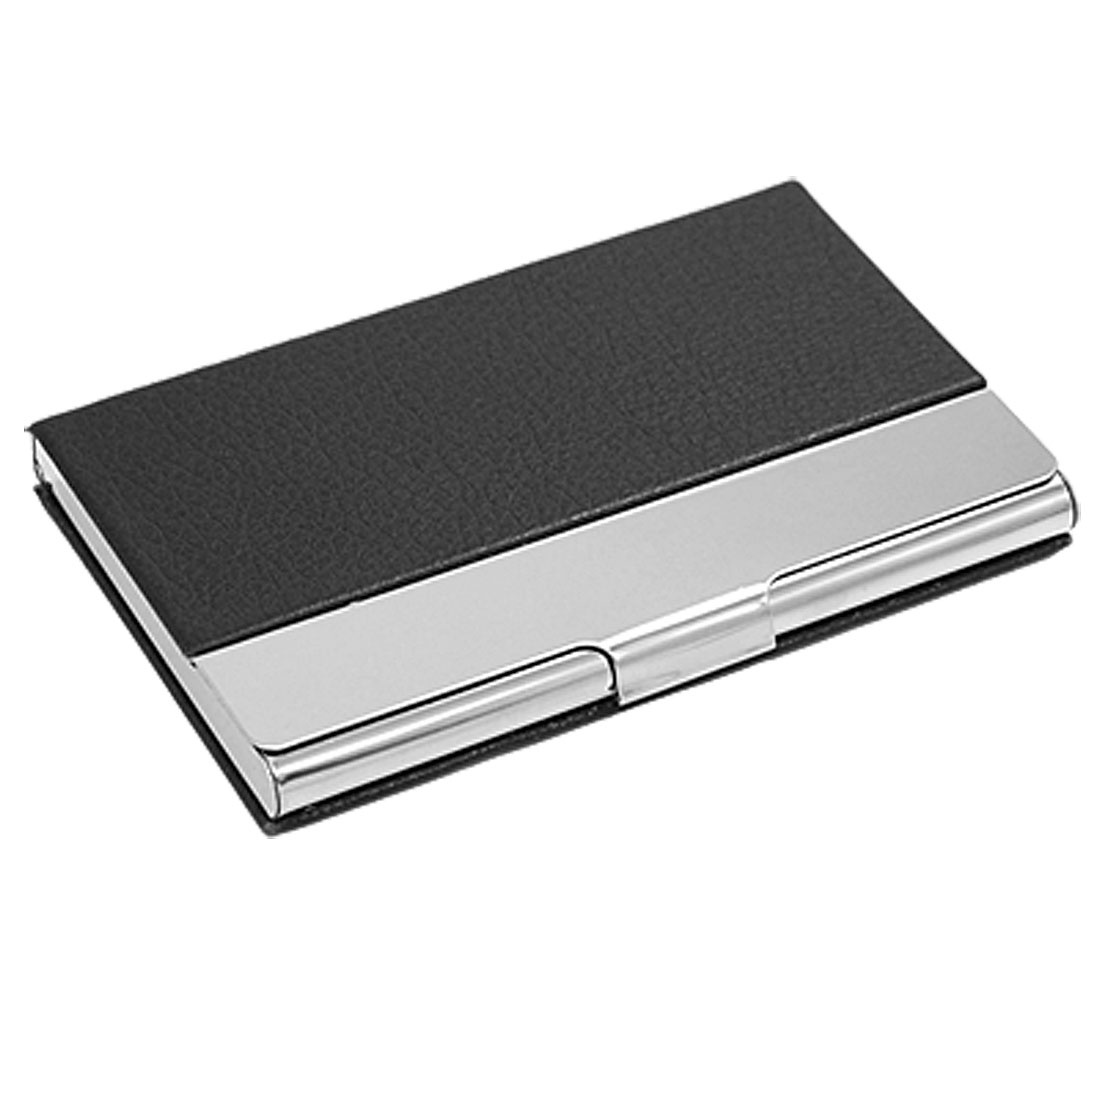 Business Credit ID Card Holder Metal Frame Case Organizer